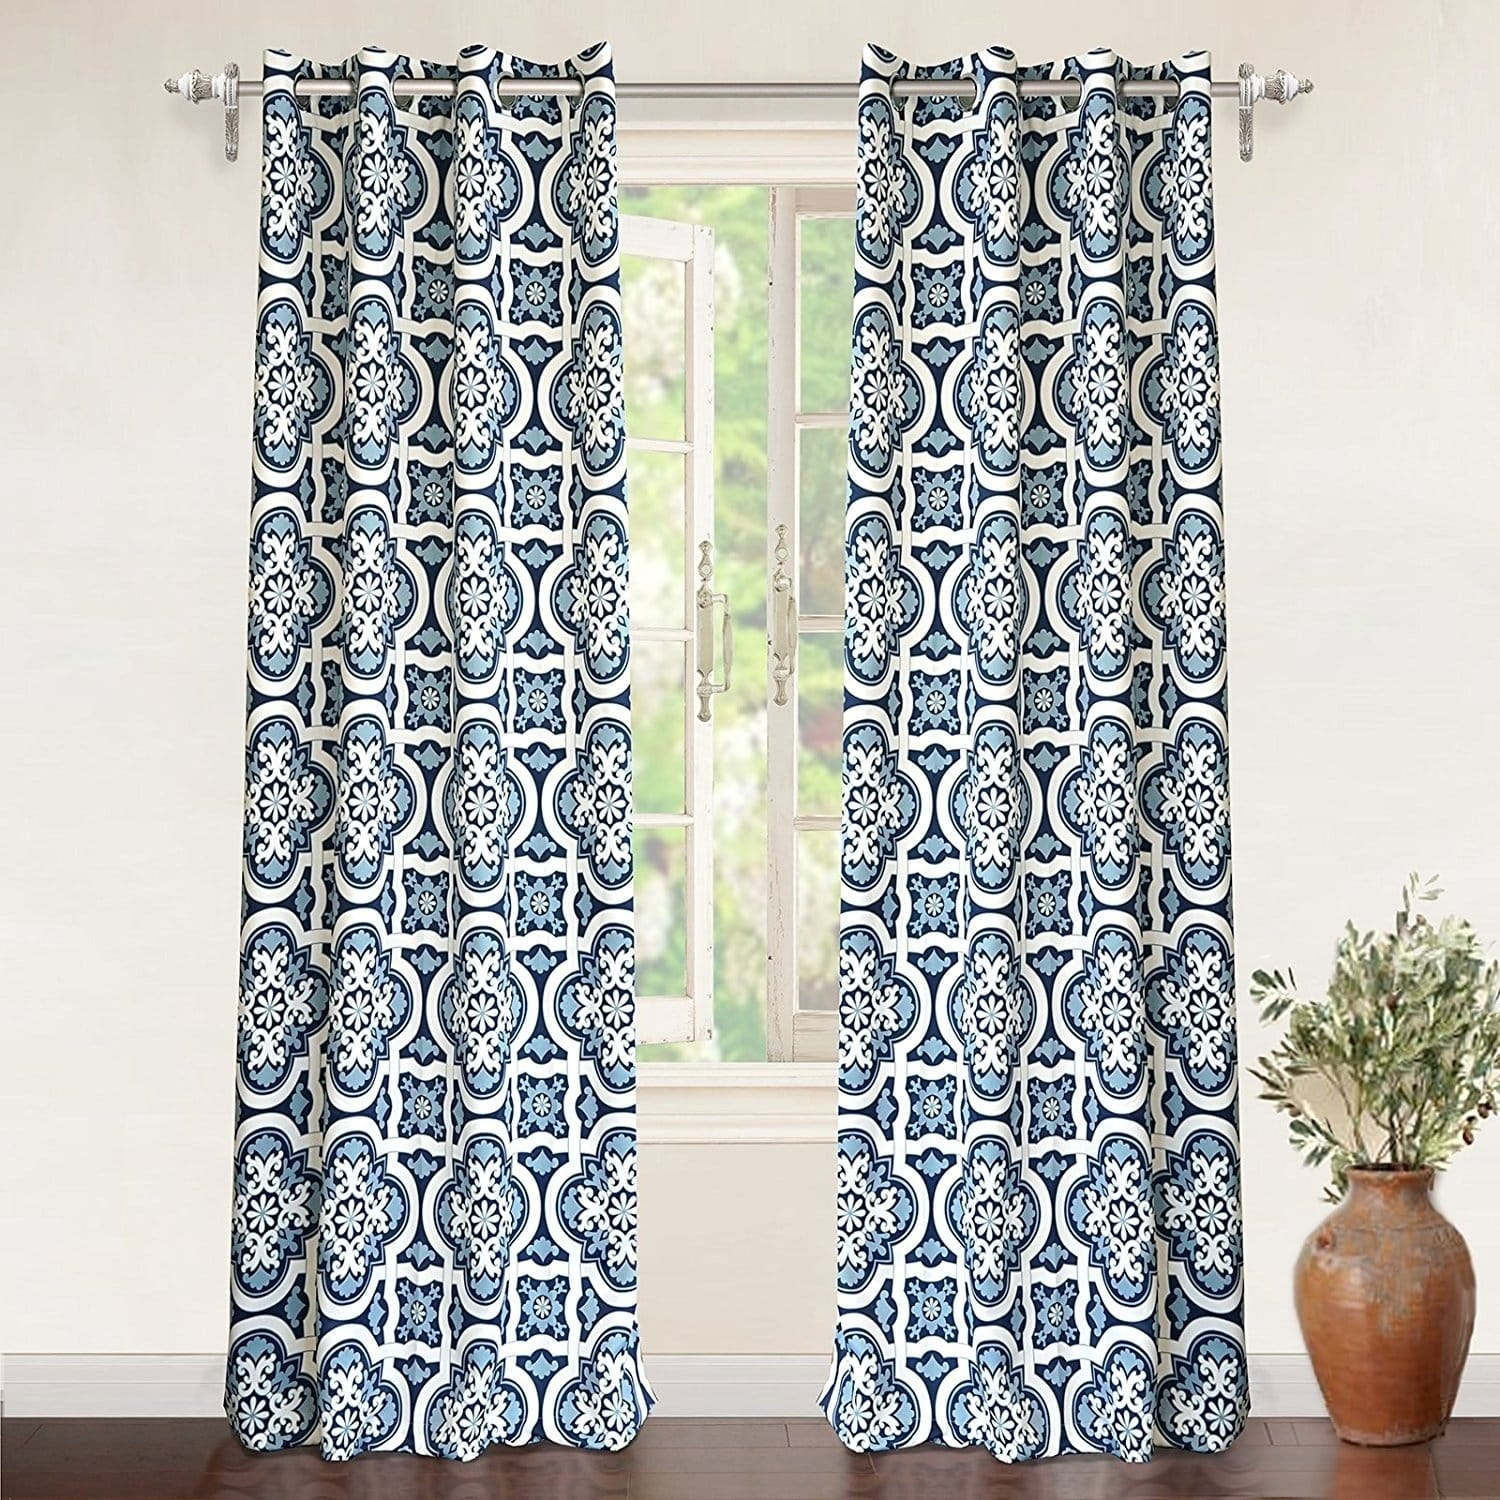 Driftaway Floral Trellis Room Darkening Window Curtain Panel pertaining to Floral Pattern Room Darkening Window Curtain Panel Pairs (Image 5 of 20)